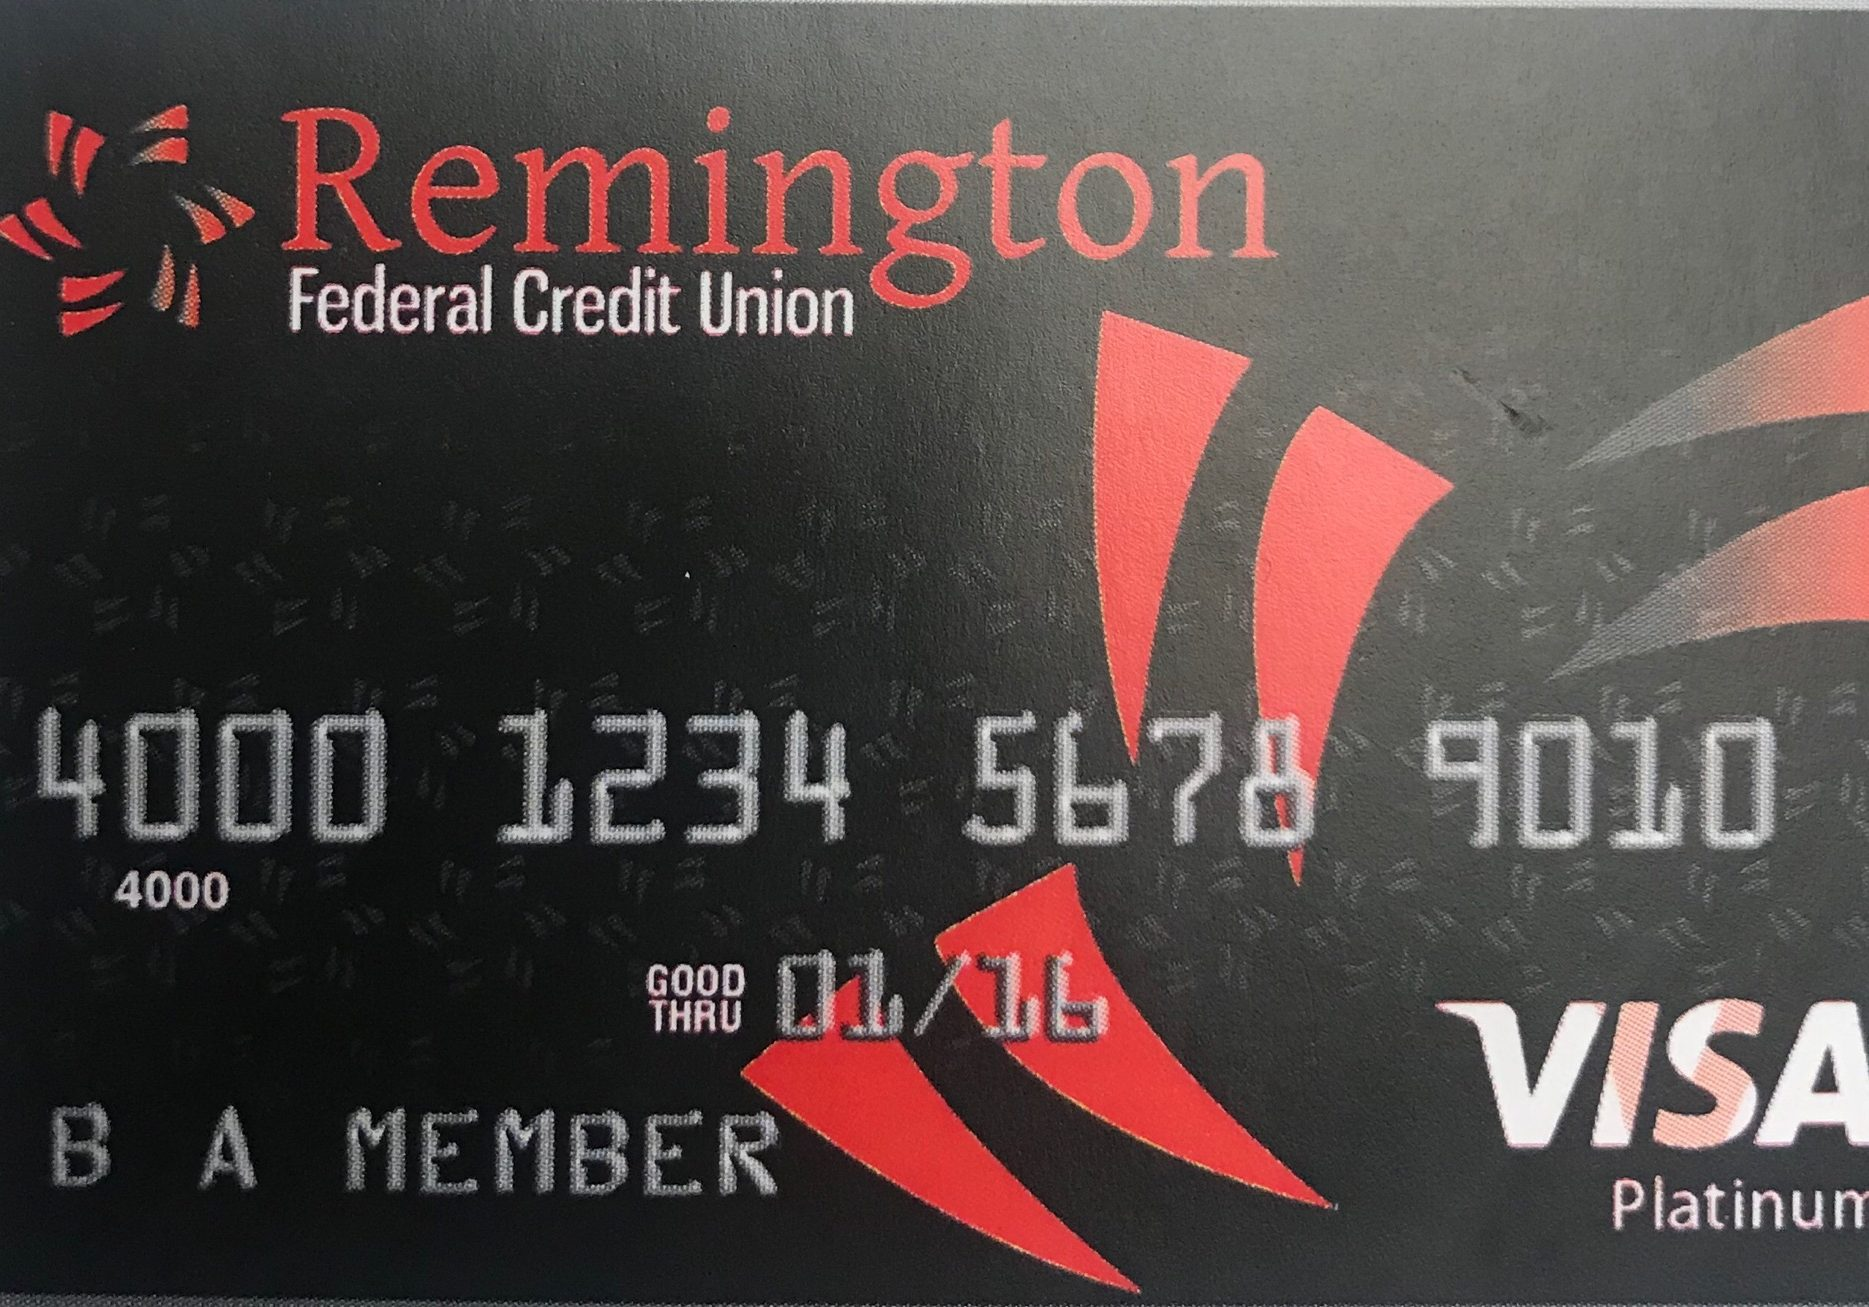 Remington credit card